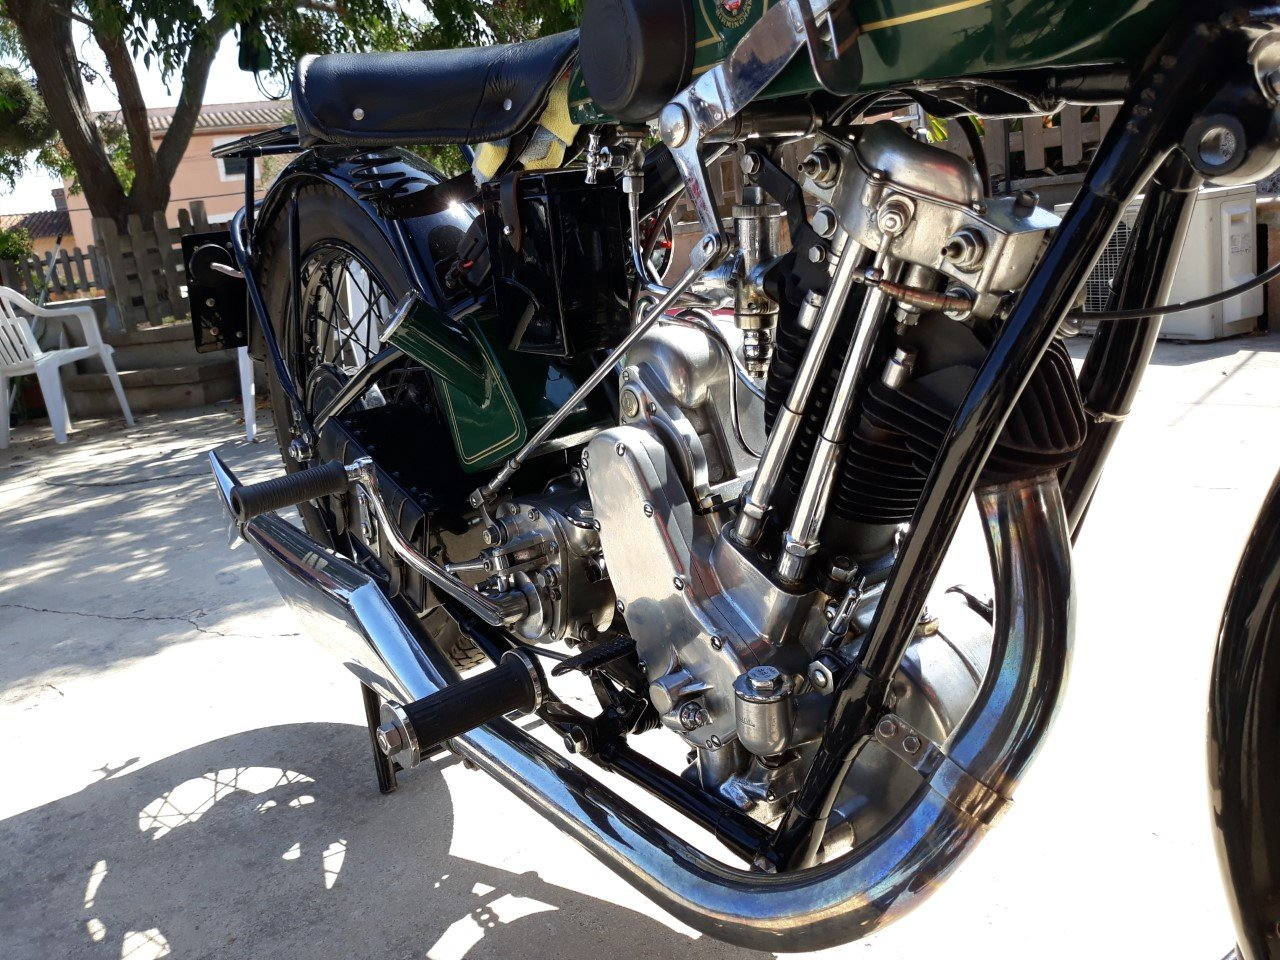 1927 BSA  S27  Sloper  500cc. - restored For Sale (picture 6 of 6)